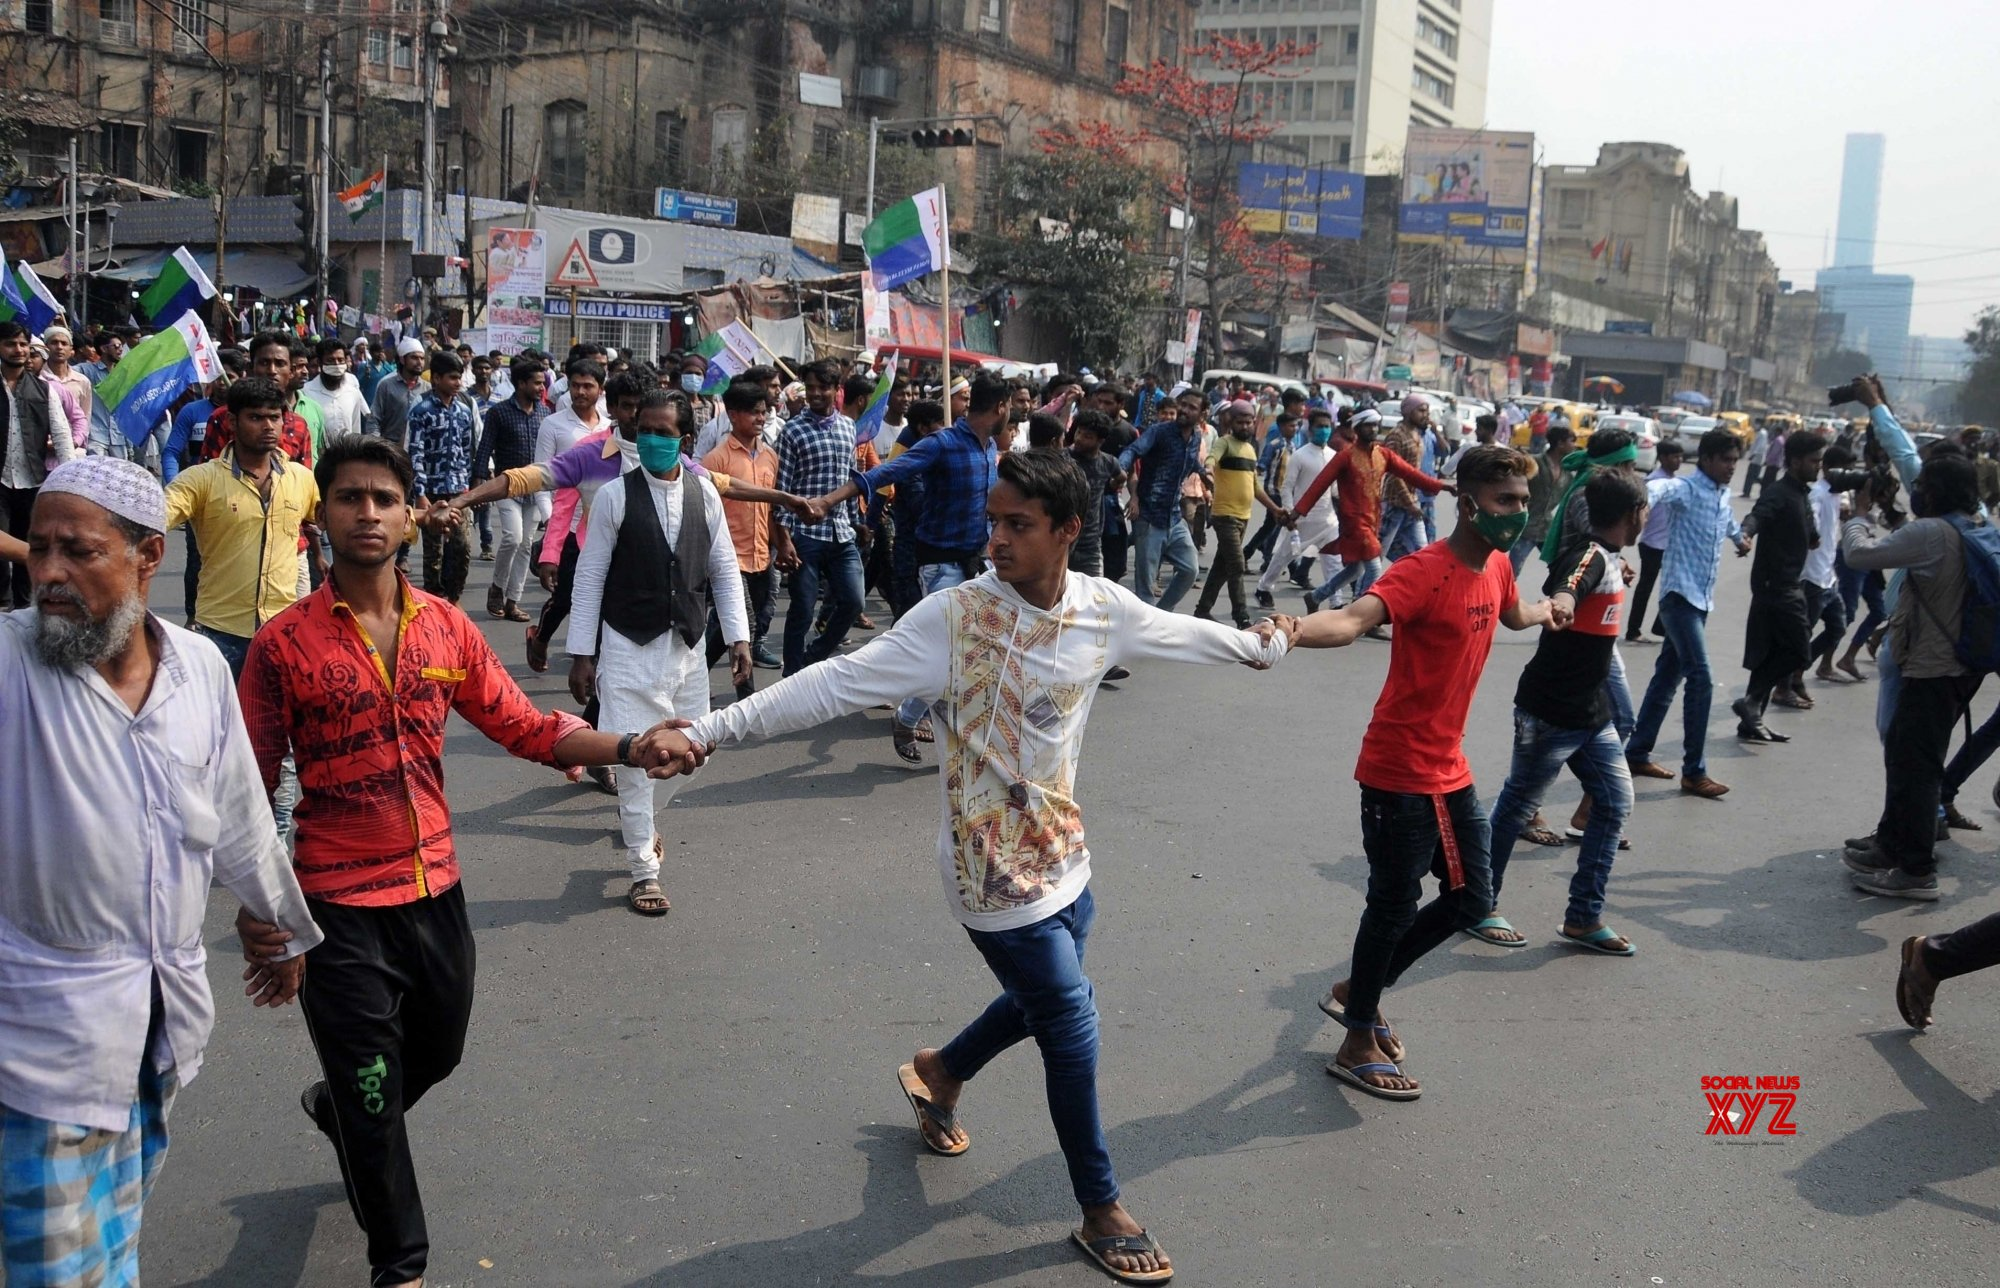 Kolkata: Indian Secular Front (ISF) activists took part in a protest rally against new farm law and against the Government in Kolkata, West Bengal on Tuesday 23rd February, 2021 #Gallery